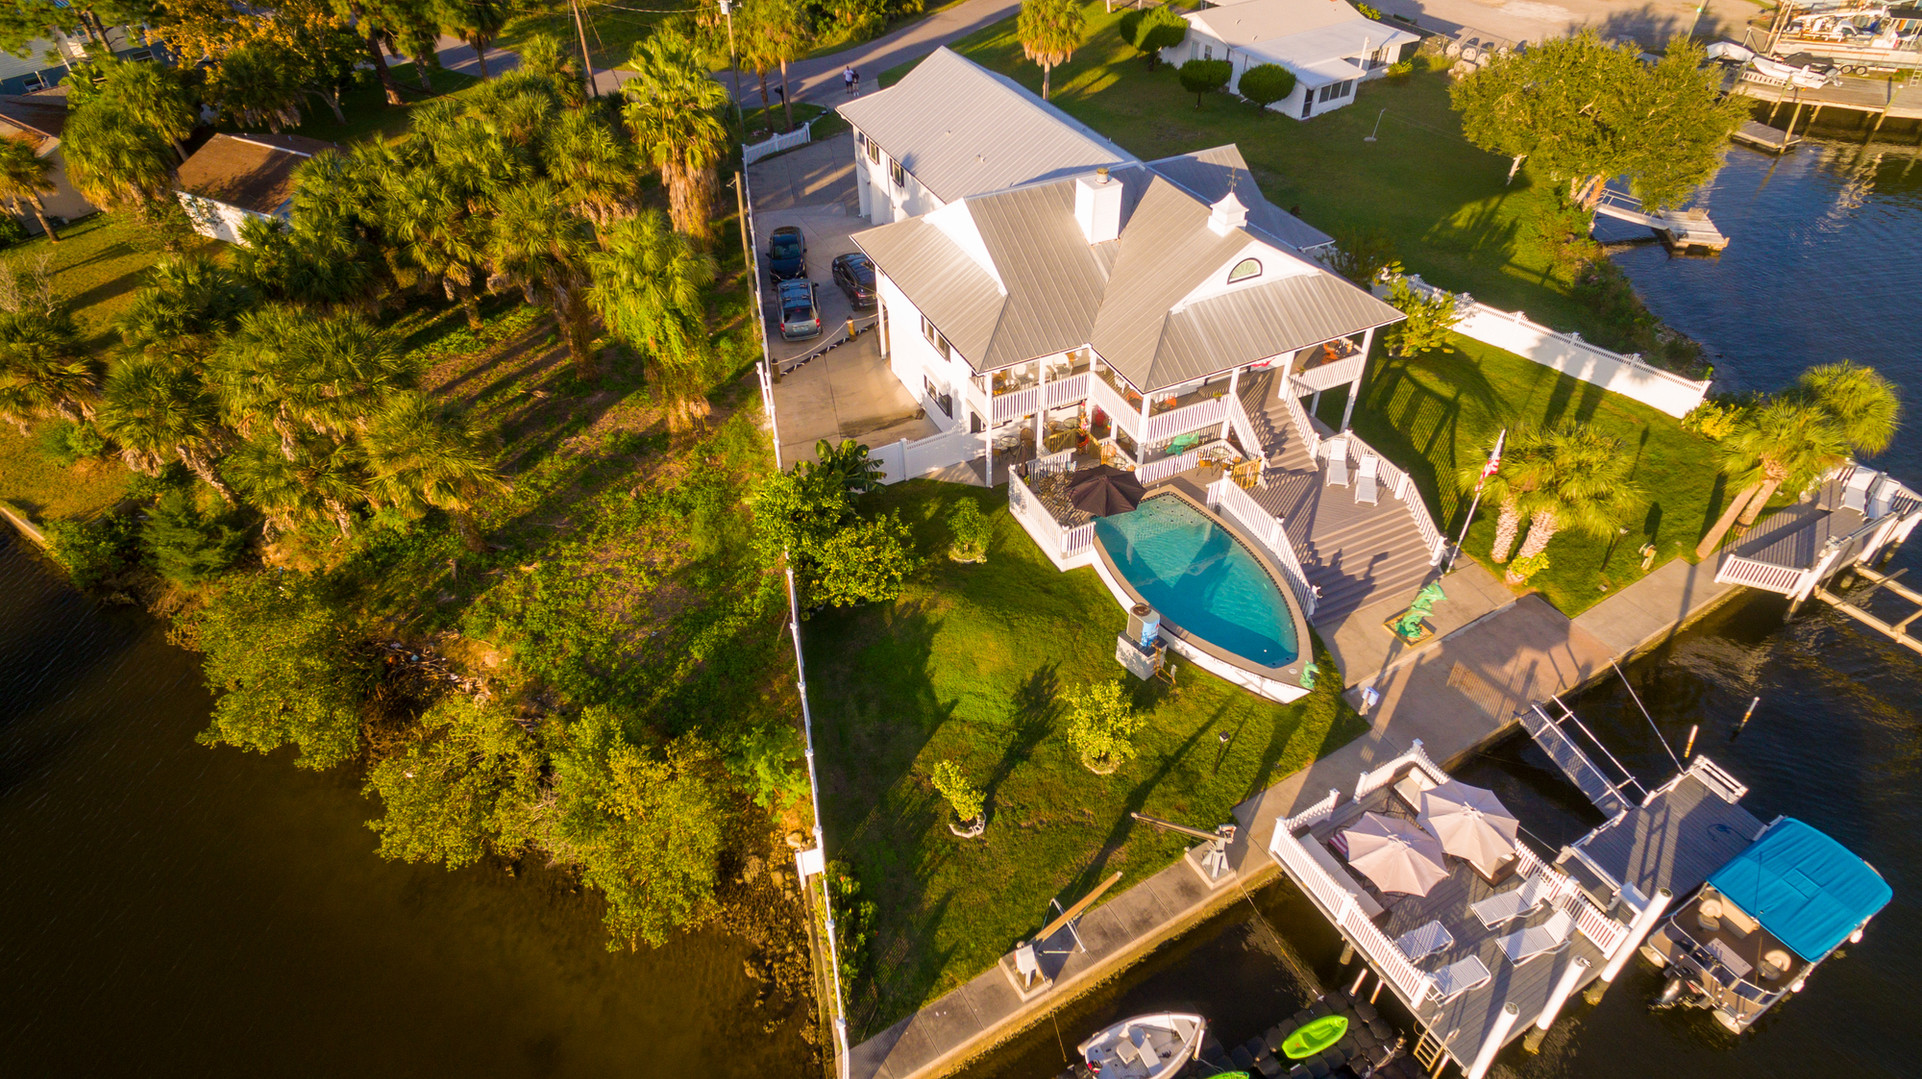 The Captains House Aerial View